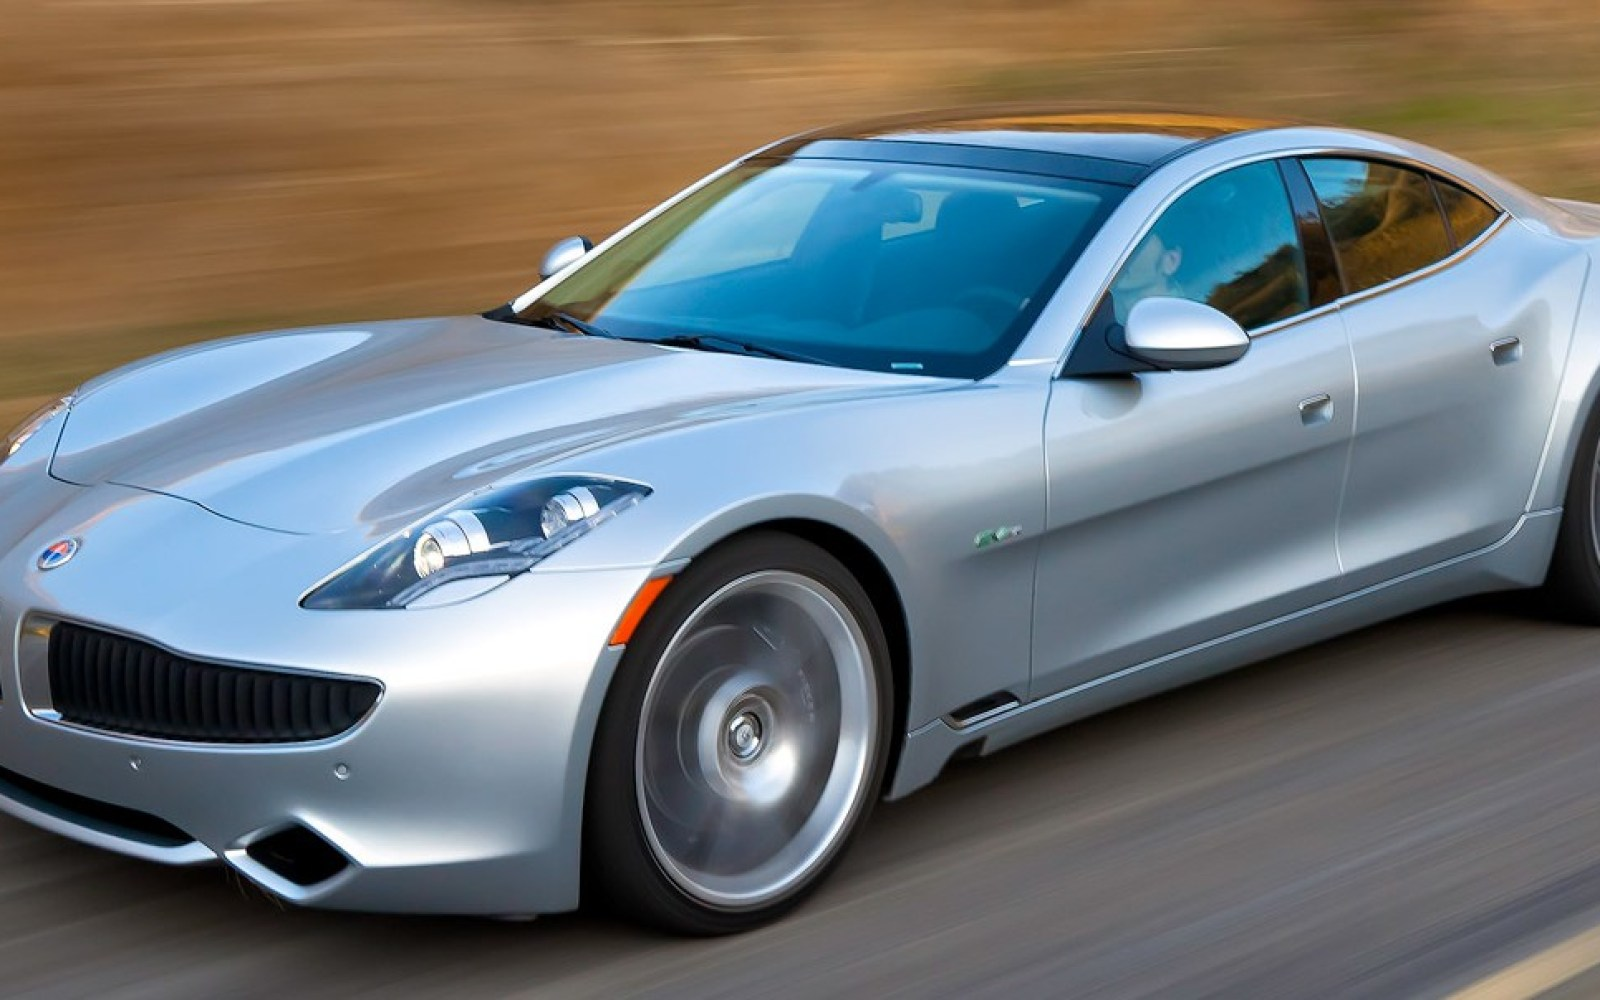 Fisker says he is bringing to market a new electric car w/ 400 miles of range using supercapacitors